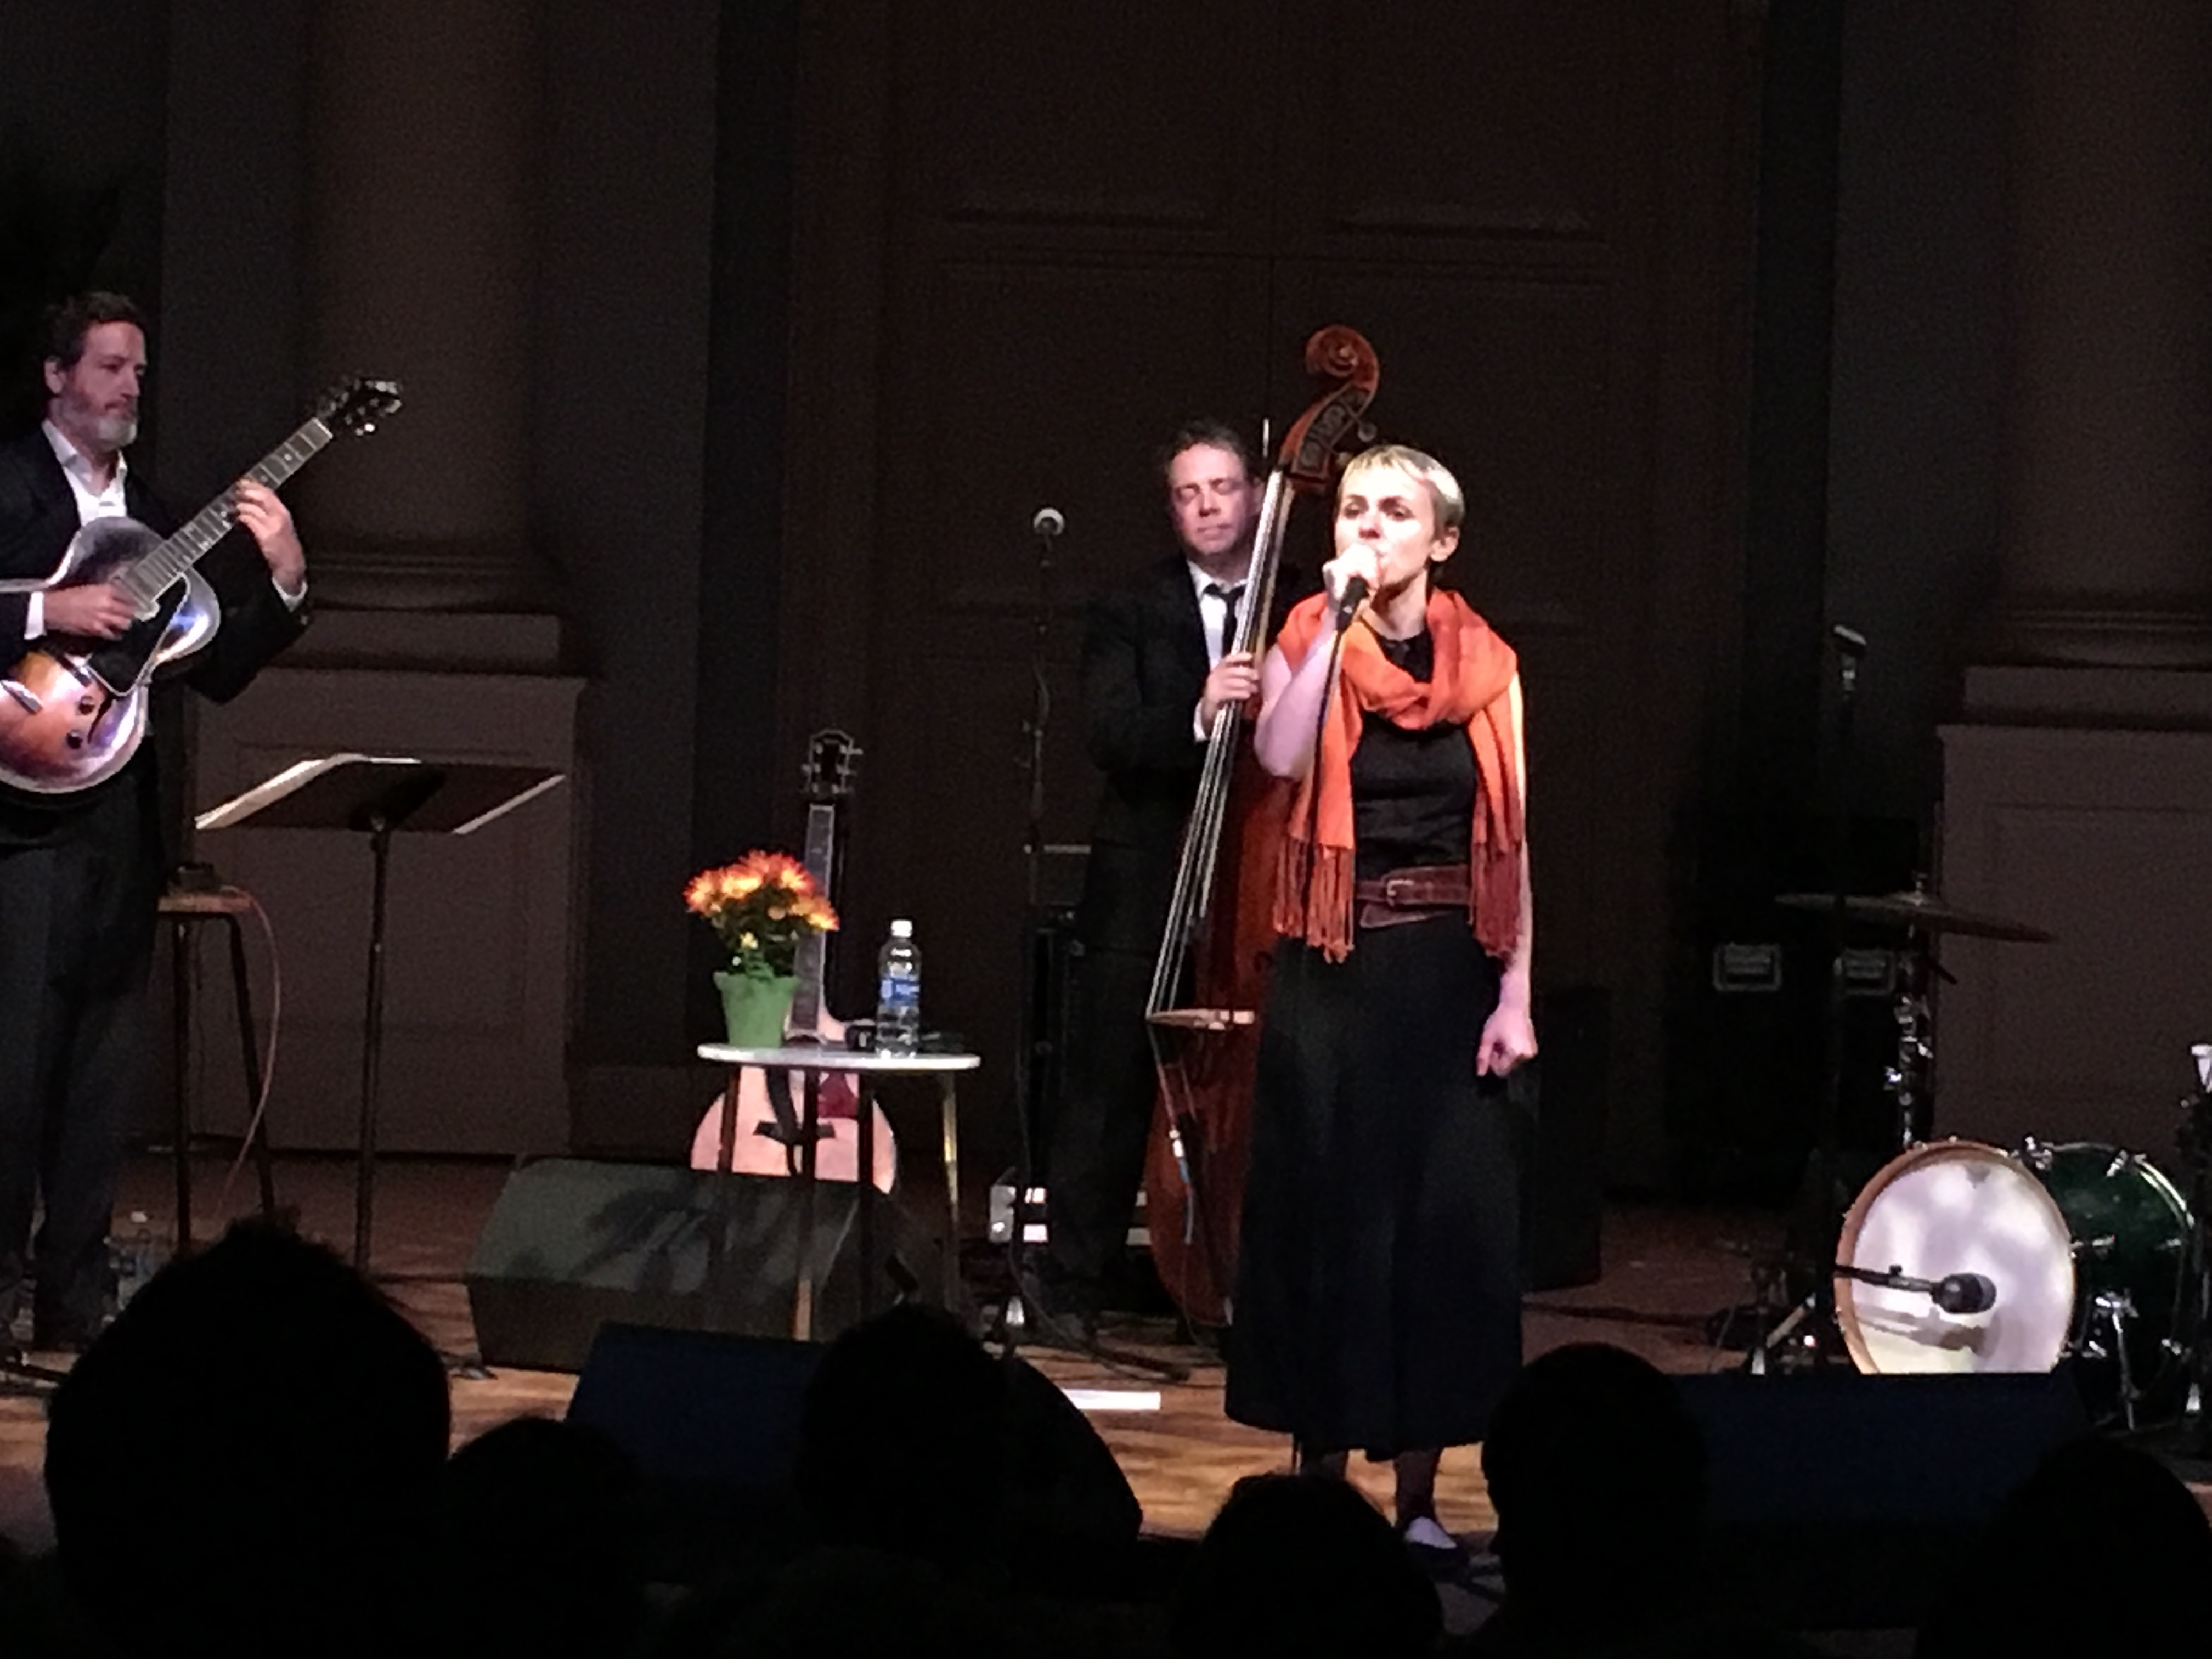 Wordless Wednesday: The Very Talented Kat Edmonson